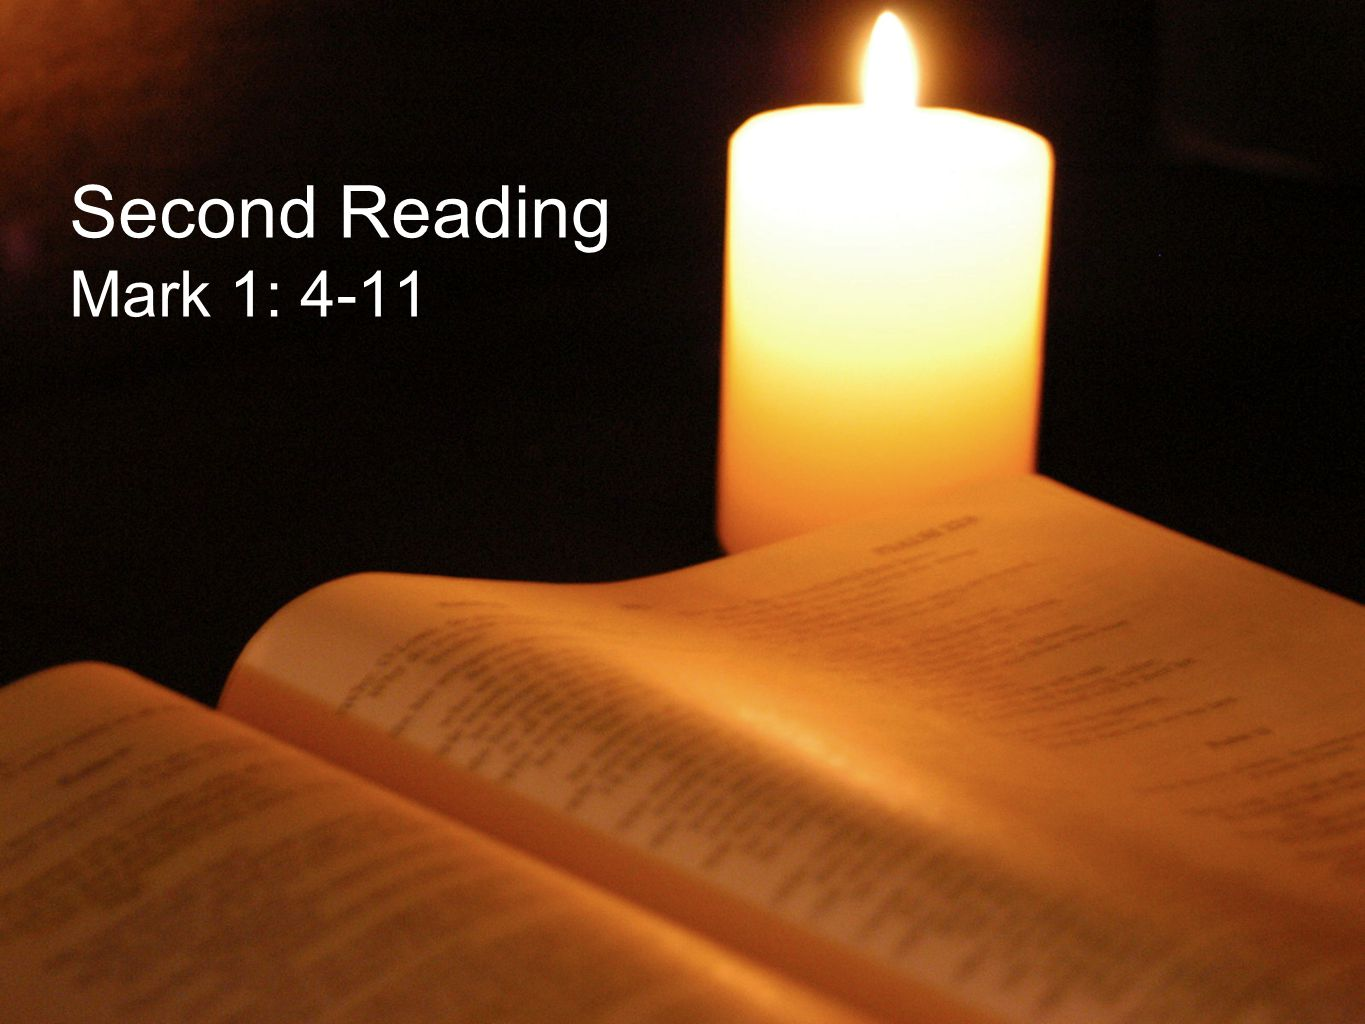 Second Reading Mark 1: 4-11